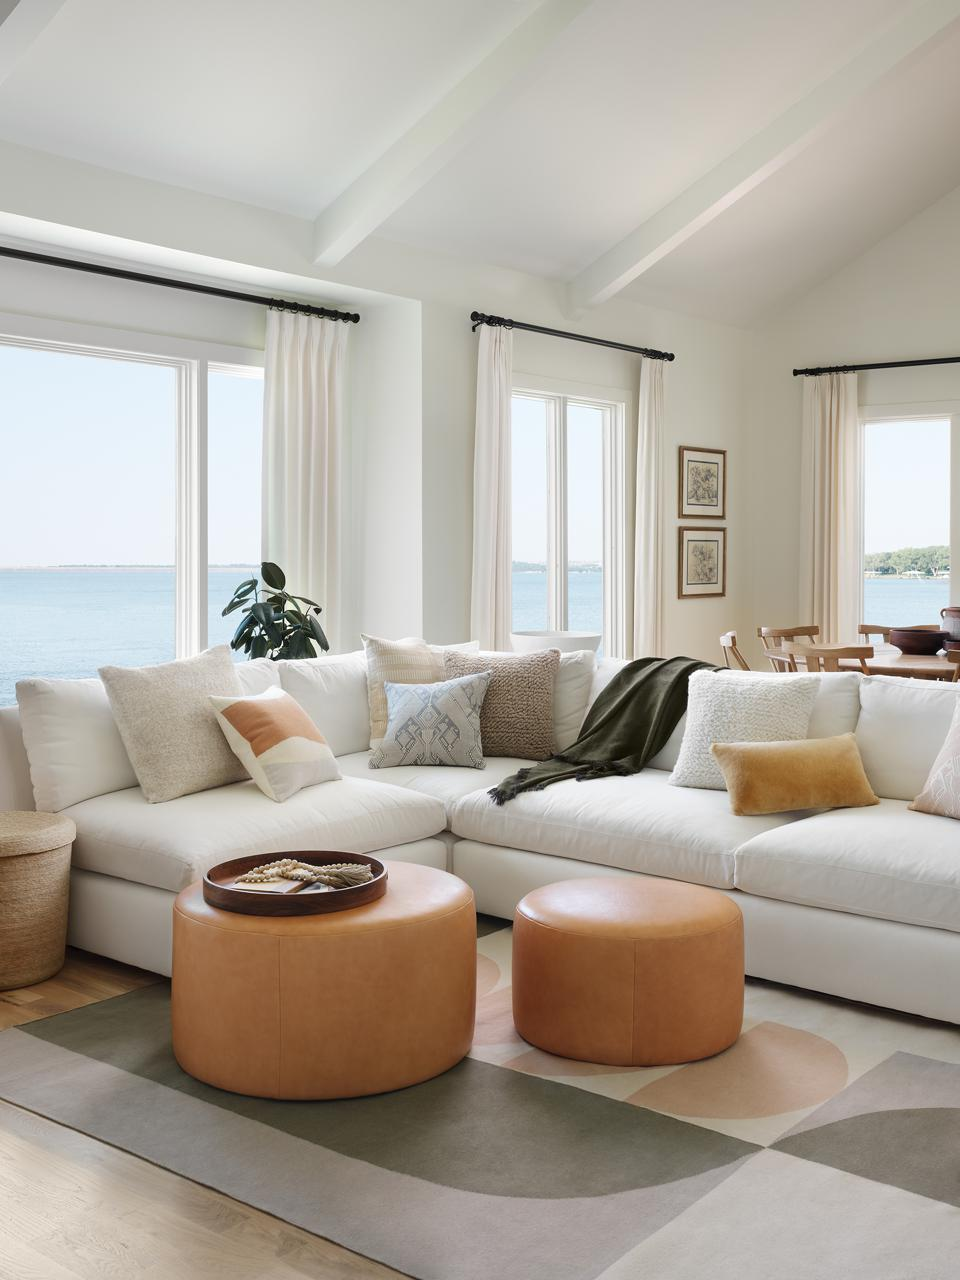 A living room space filled with The Citizenry's leather poufs, pillows and cotton rug.